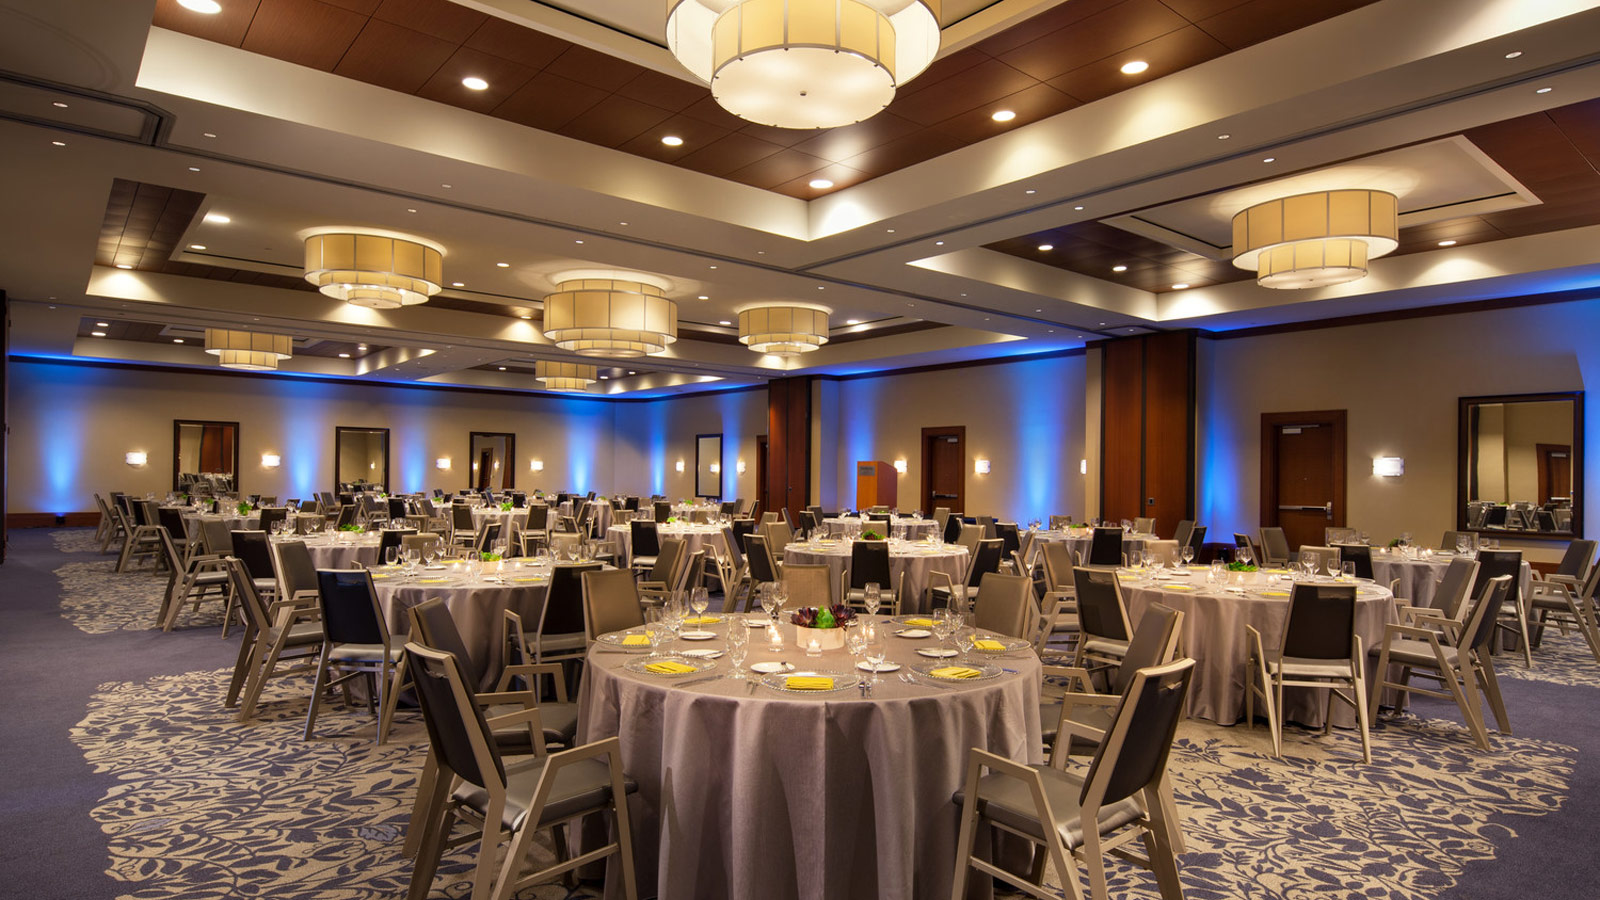 A shot of the Wisteria Ballroom at The Westin Houston, Memorial City - perfect for corporate events and conferences.